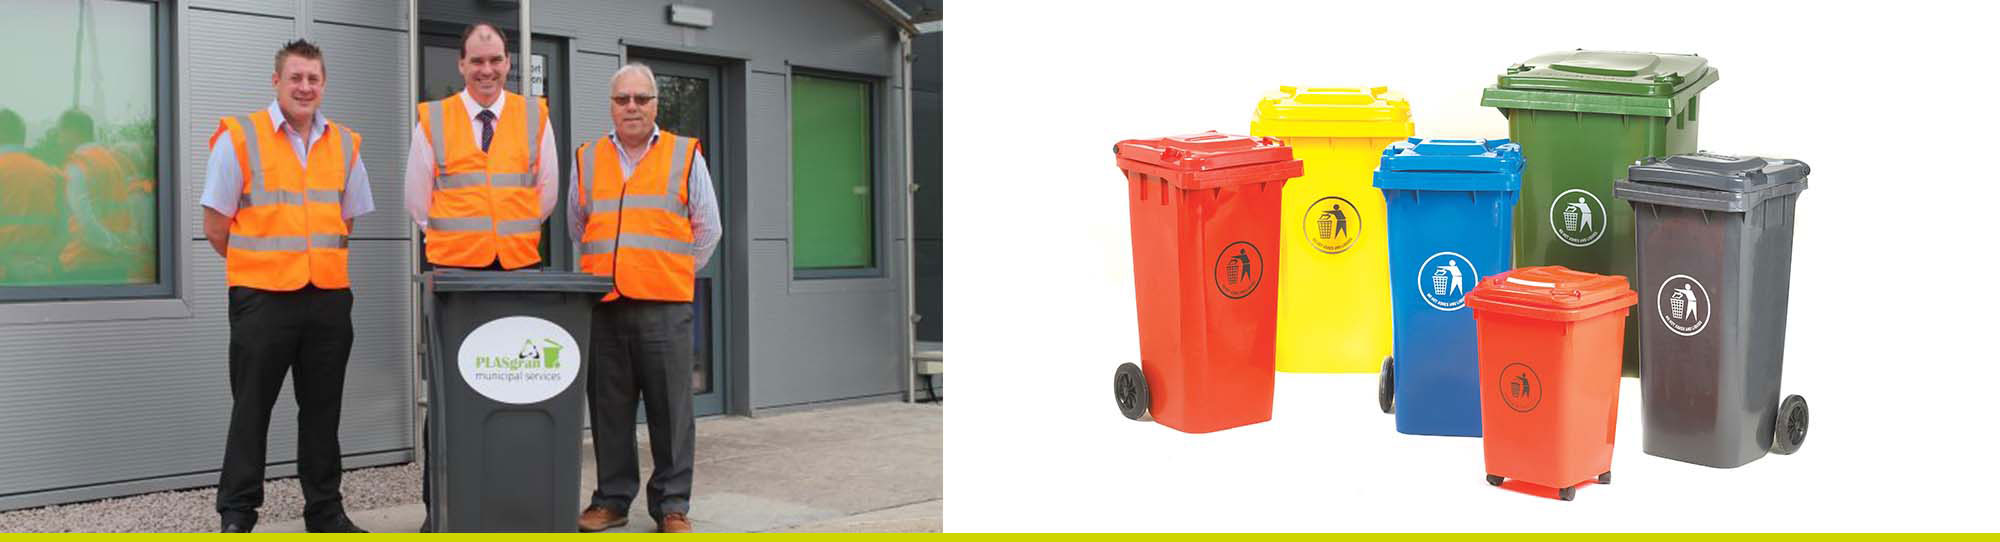 Municipal Services for end of life wheelie bins